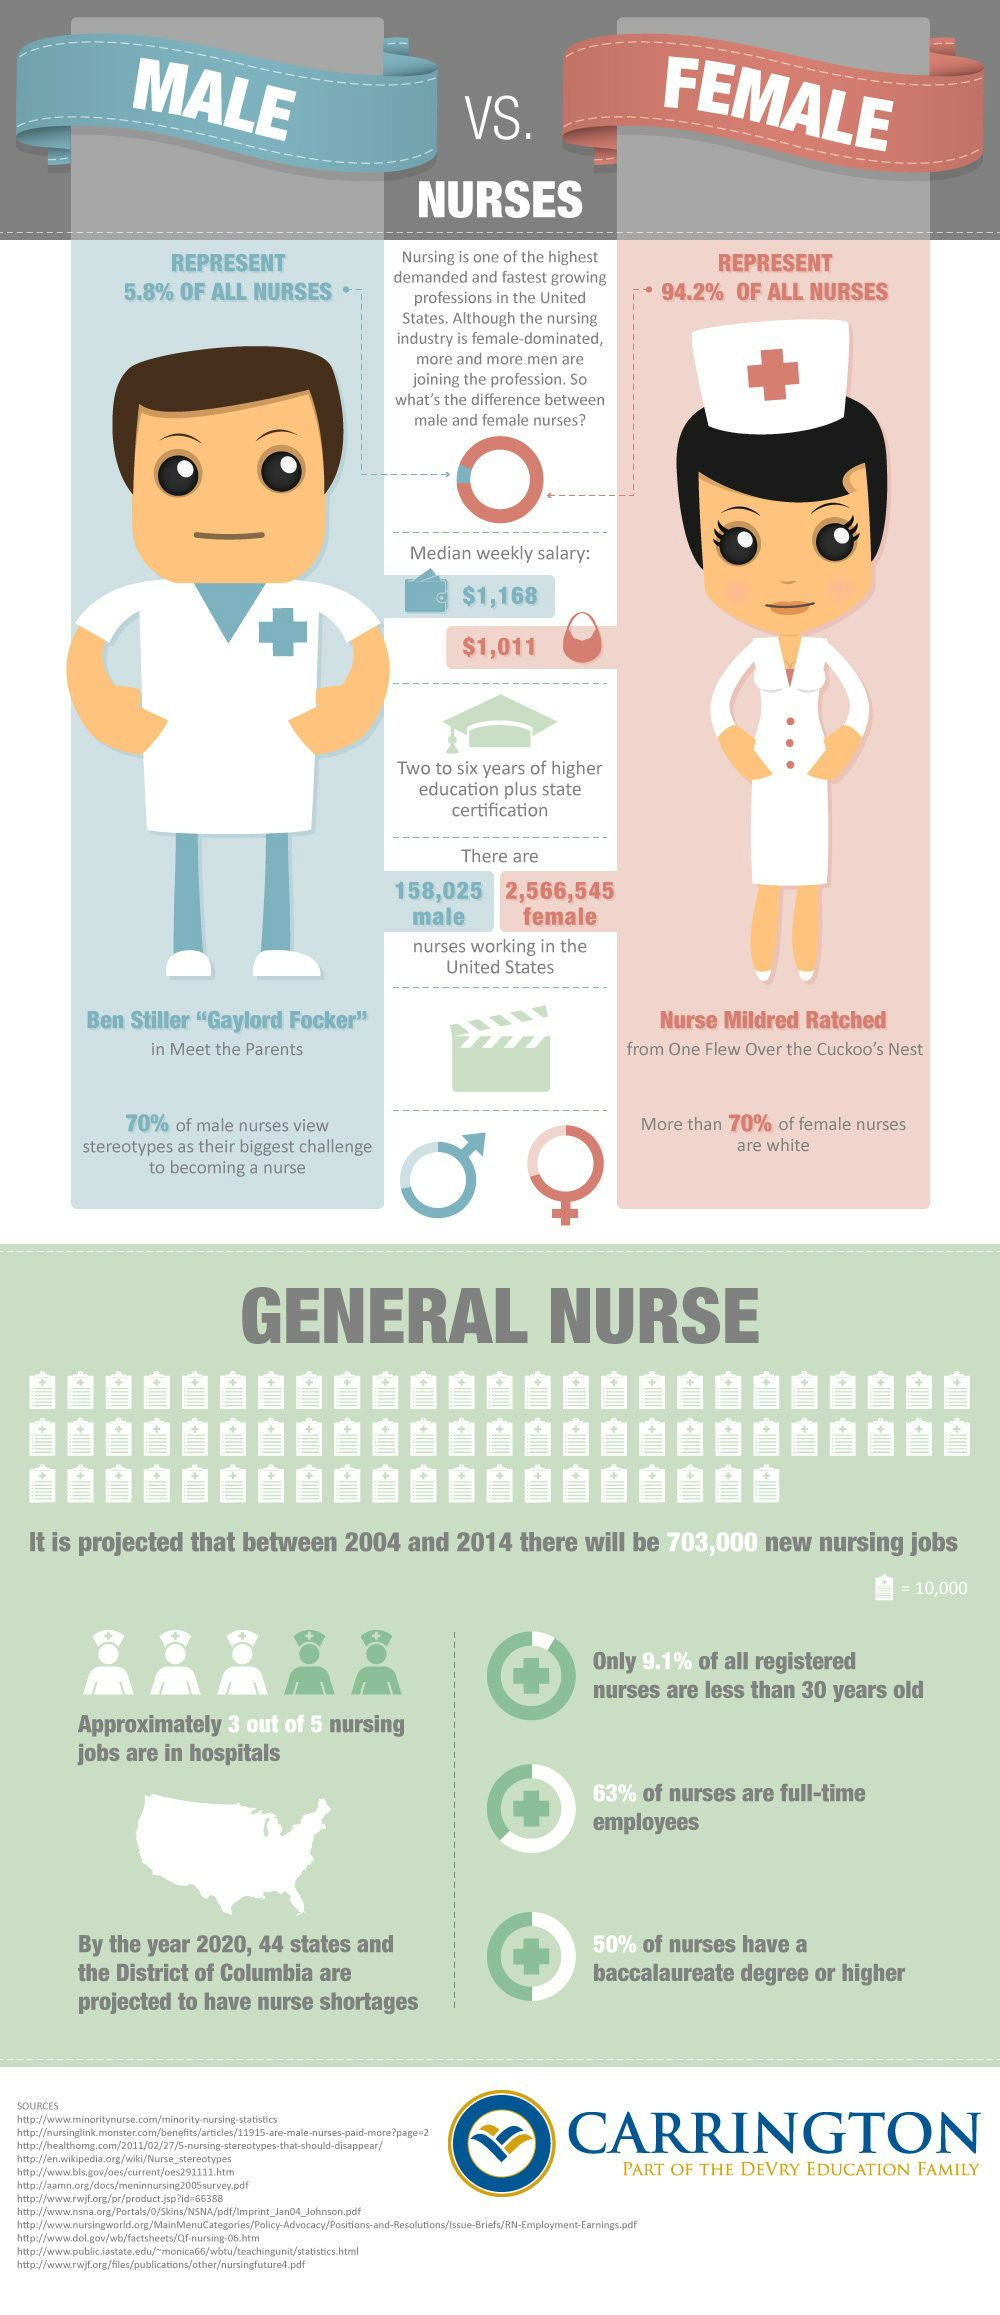 Male Nurses Vs Female Nurses